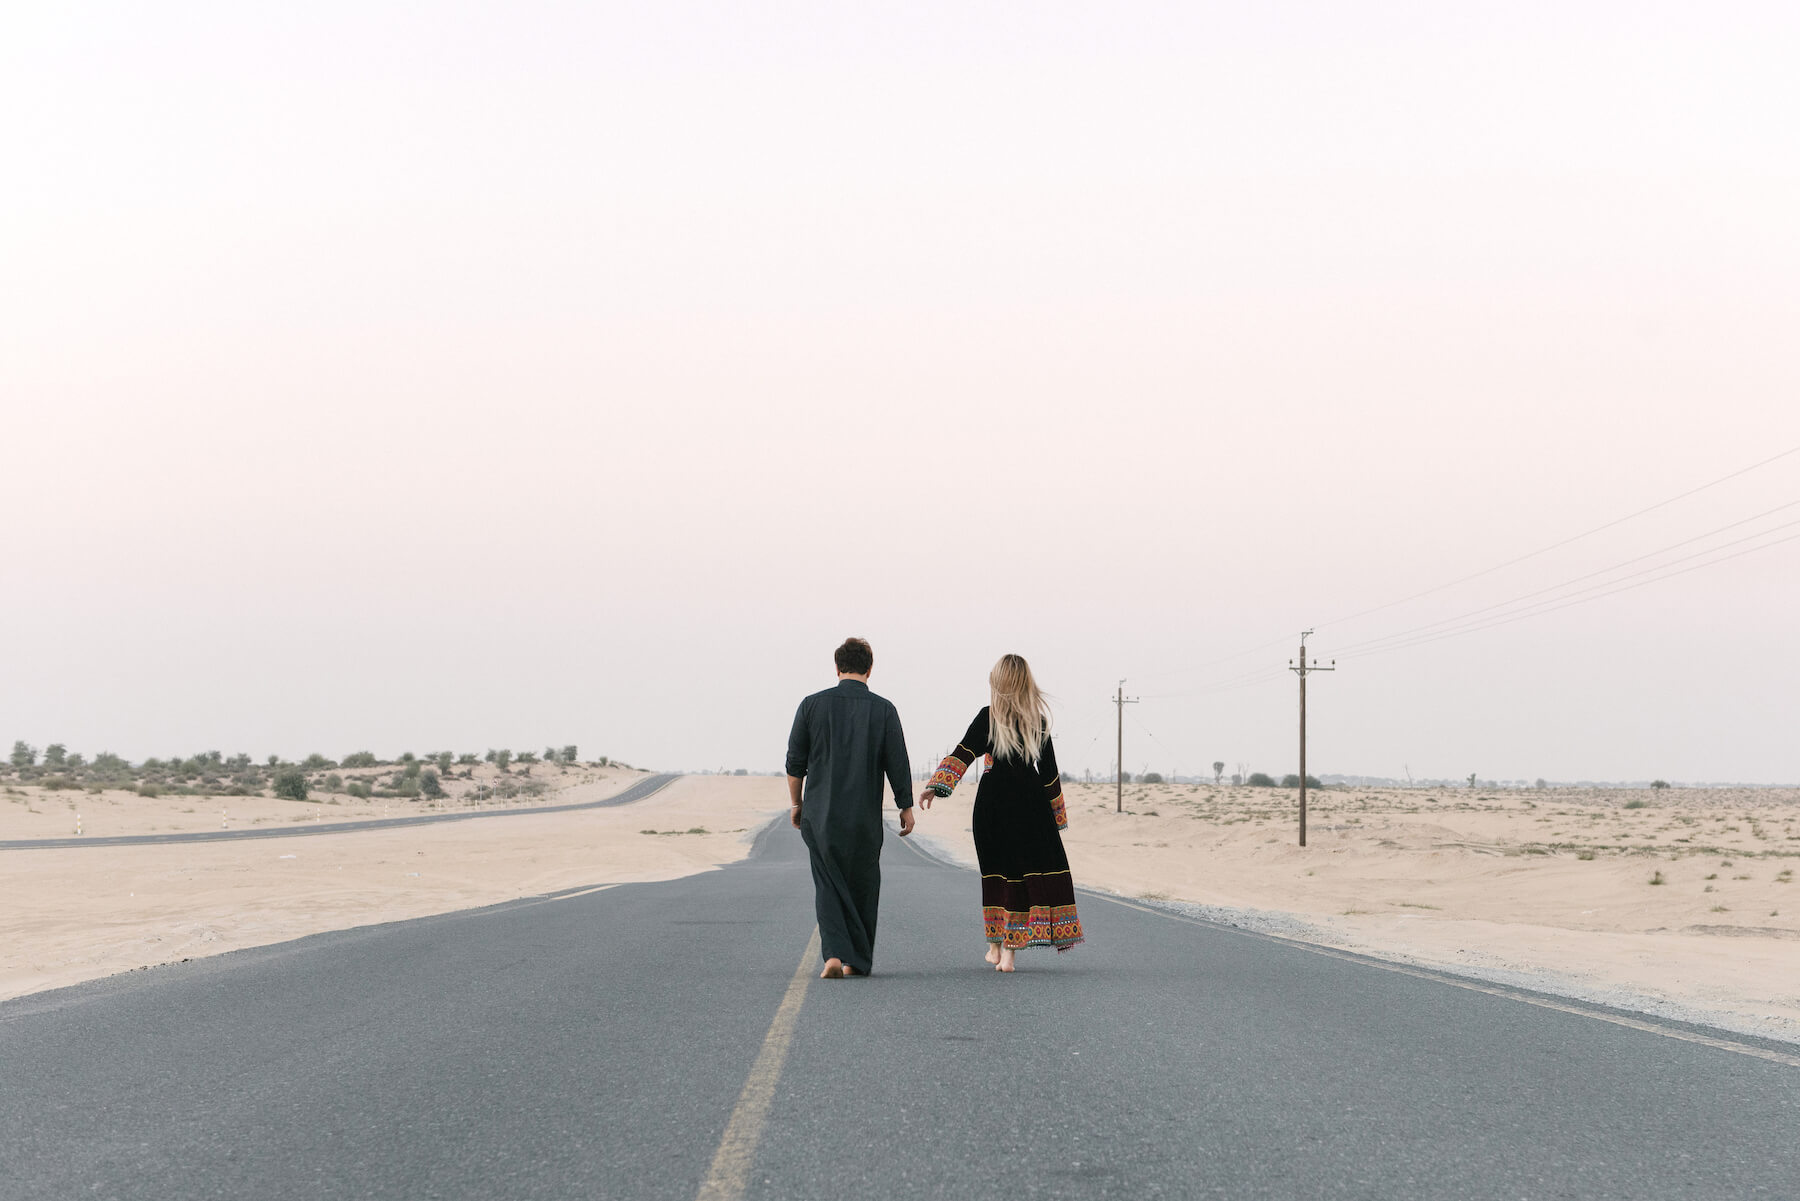 Couple walking down highway road together near the Dubai Desert Conservation Reserve